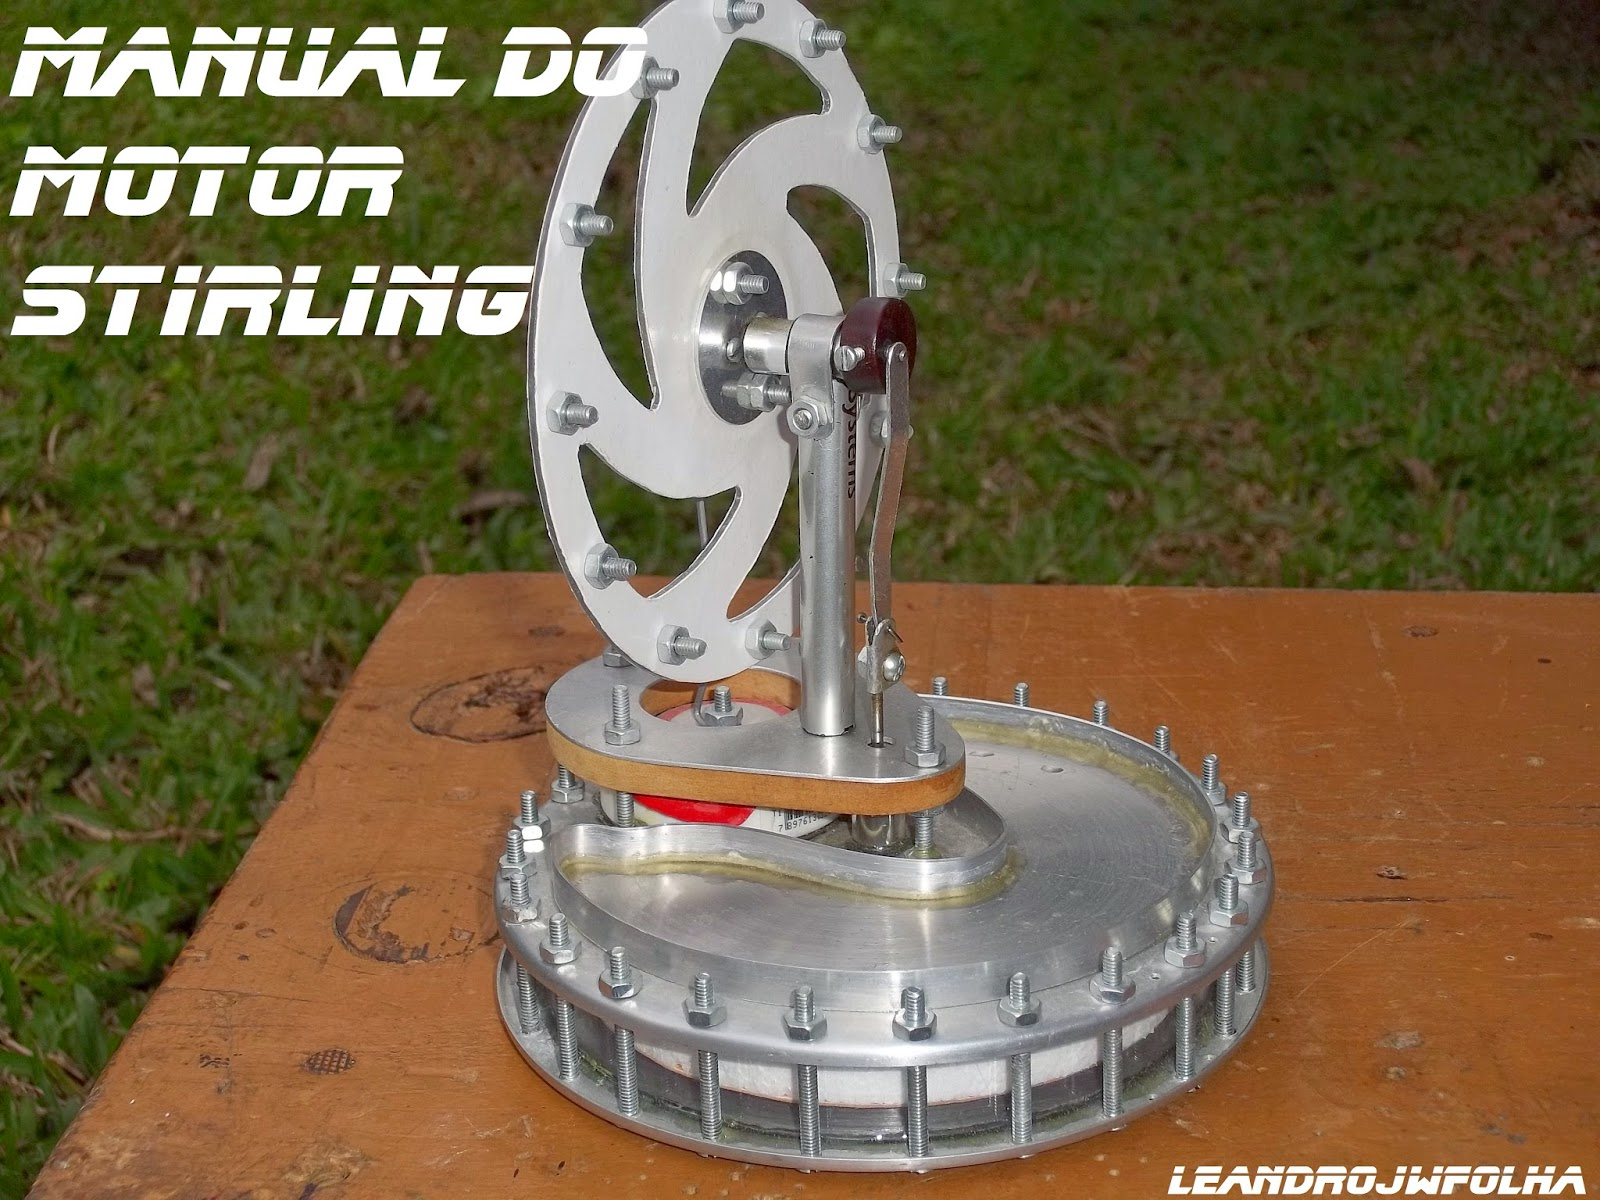 Manual do motor Stirling, motor caseiro do modelo Gama LTD